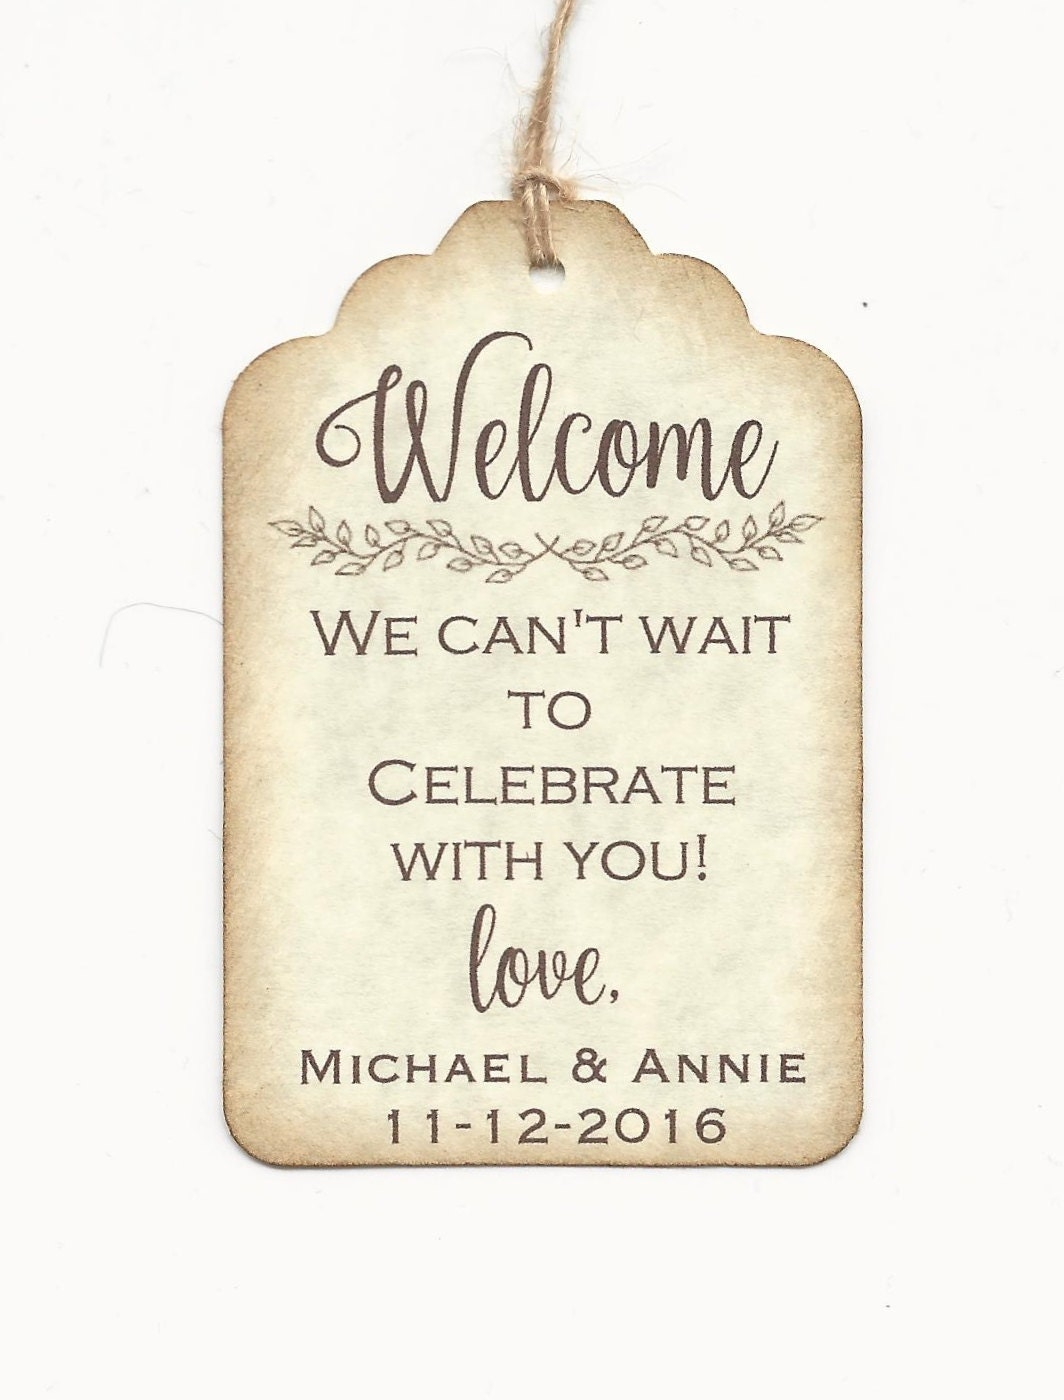 Wedding Favor Bag Labels : 20 Welcome Bag Tags Wedding Favor Tags personalized custom